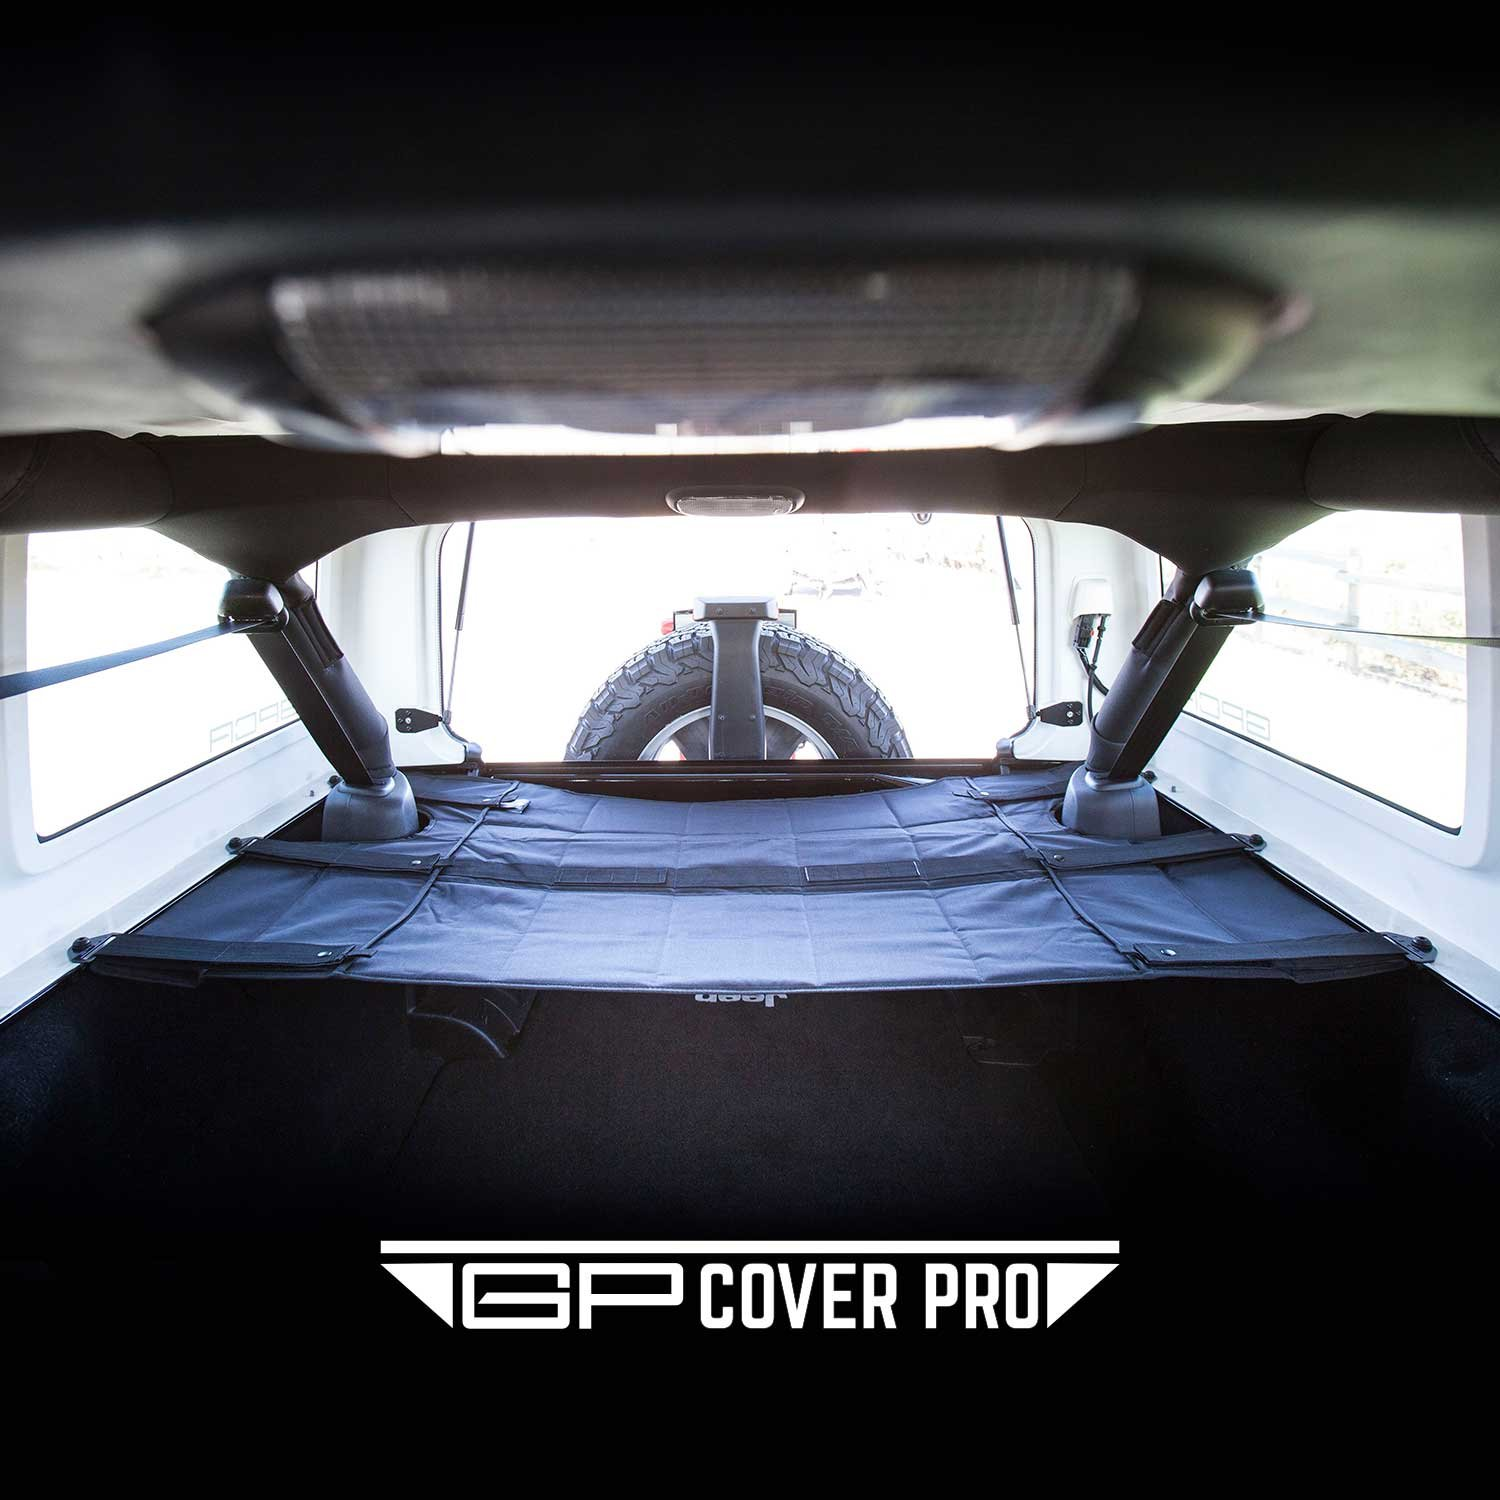 for Jeep Wrangler Sports//Sahara//Freedom//Rubicon 2007-2018 Models GPCA Cargo Cover PRO and Cargo Organizer Freedom Pack for TOP ON//Topless Jeep Wrangler JKU 4DR Freedom Pack